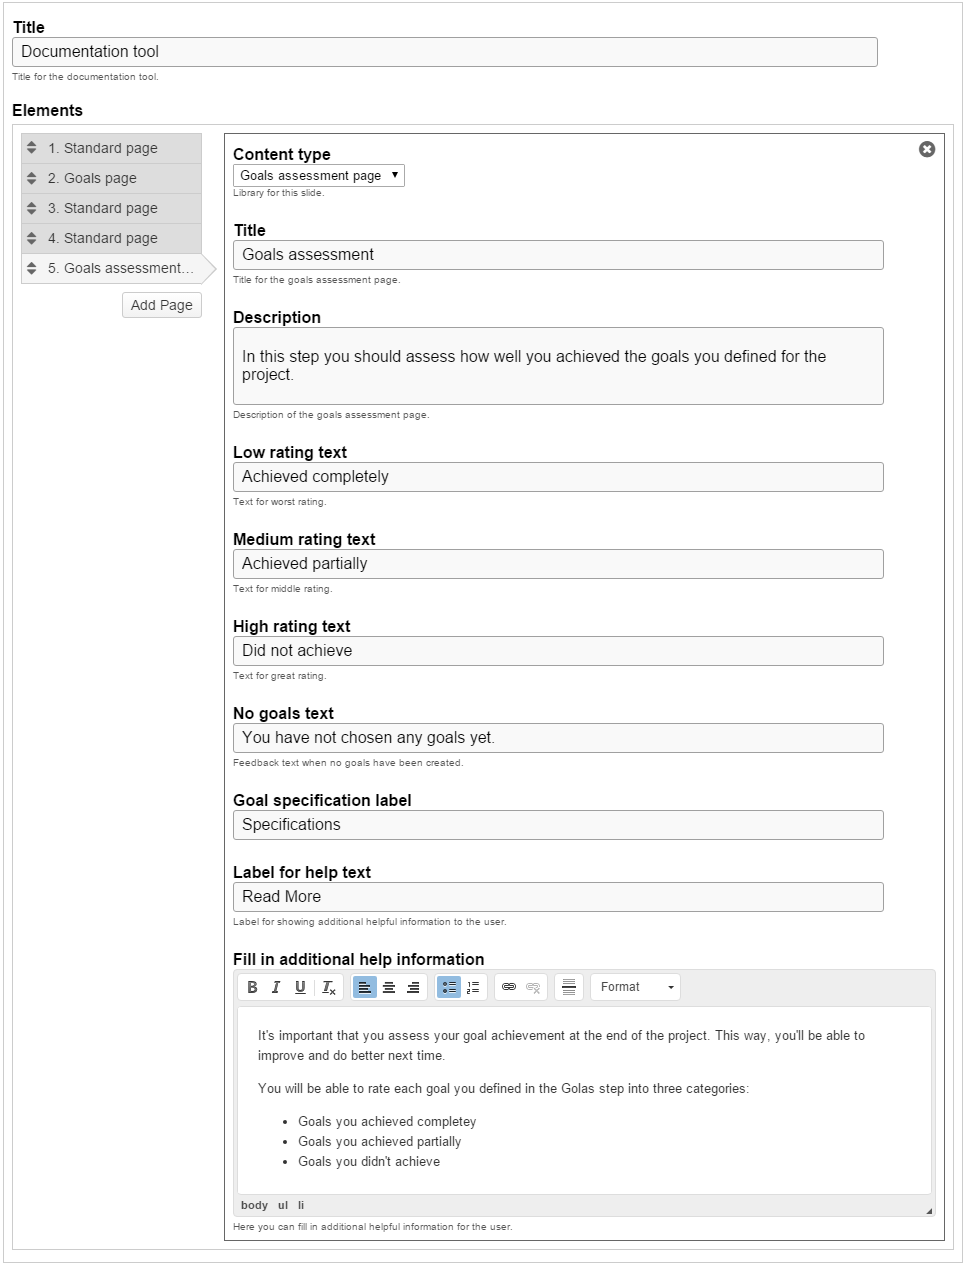 Add The Exact Same Content For Goals Assessment Page As In The  Documentation Tool Mentioned In The Above Example. After Adding Content To  The Goals